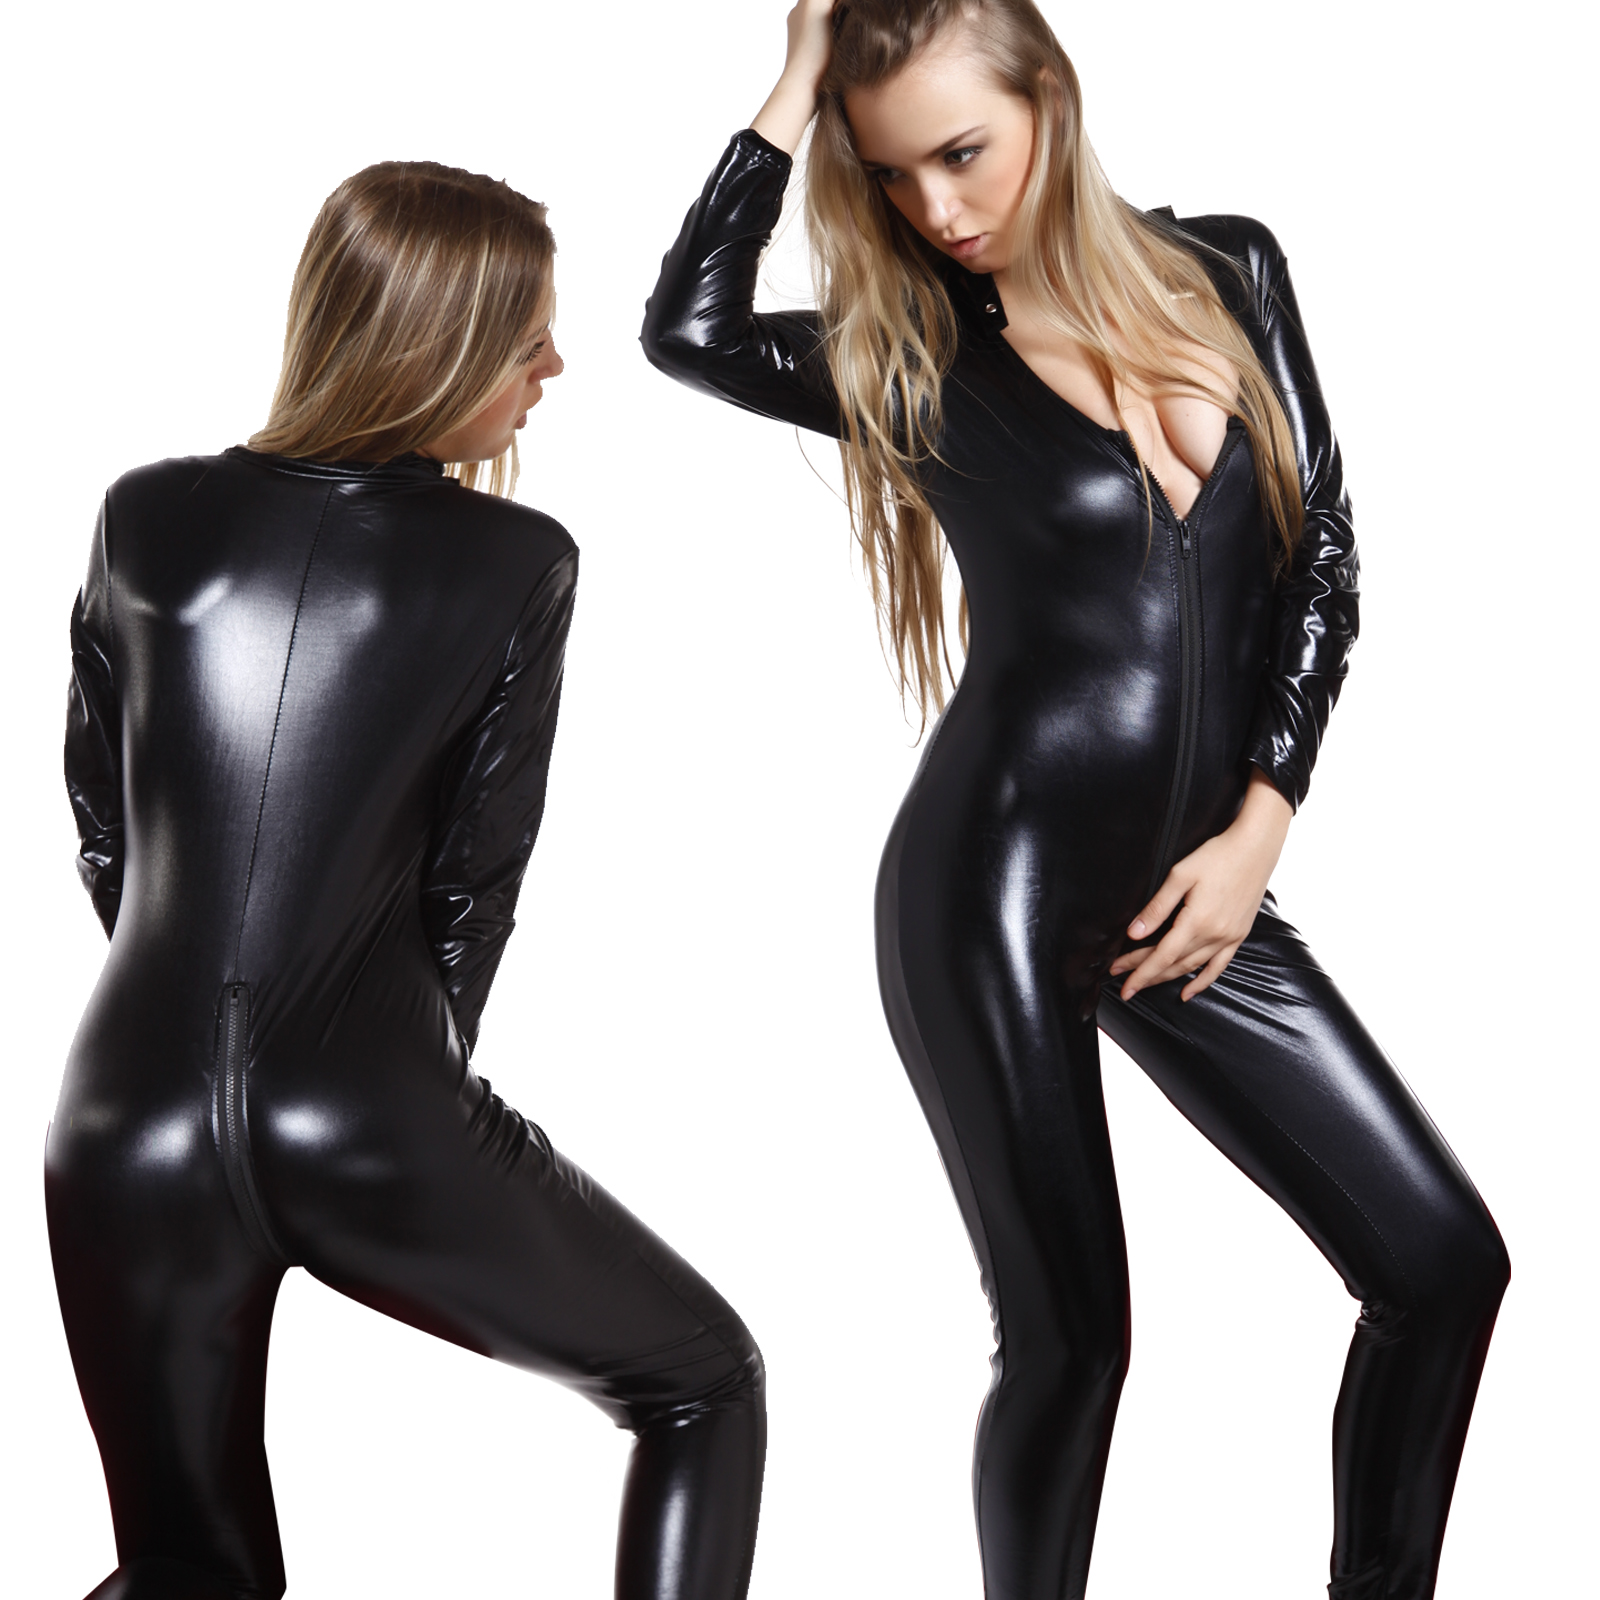 Sexy Catsuits | Sexy Clothing | Lovehoney USANext Day P&P Available· Day Returns Policy· Free Shipping Over $